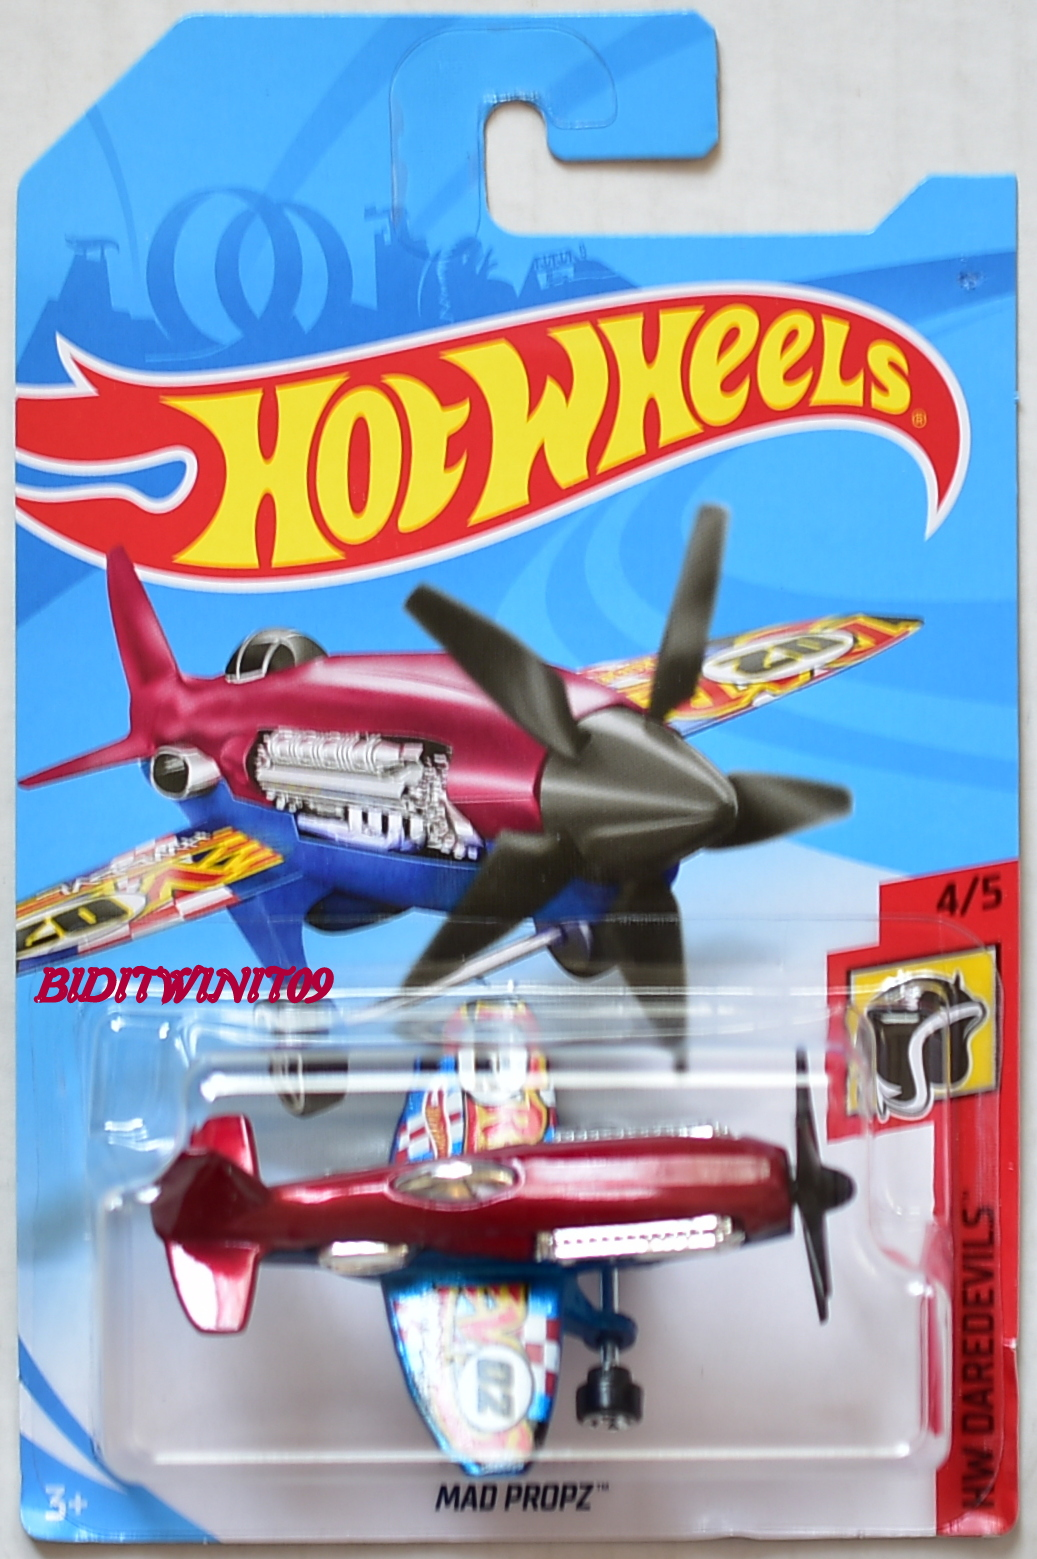 HOT WHEELS 2018 HW DAREDEVILS MAD PROPZ #4/5 RED